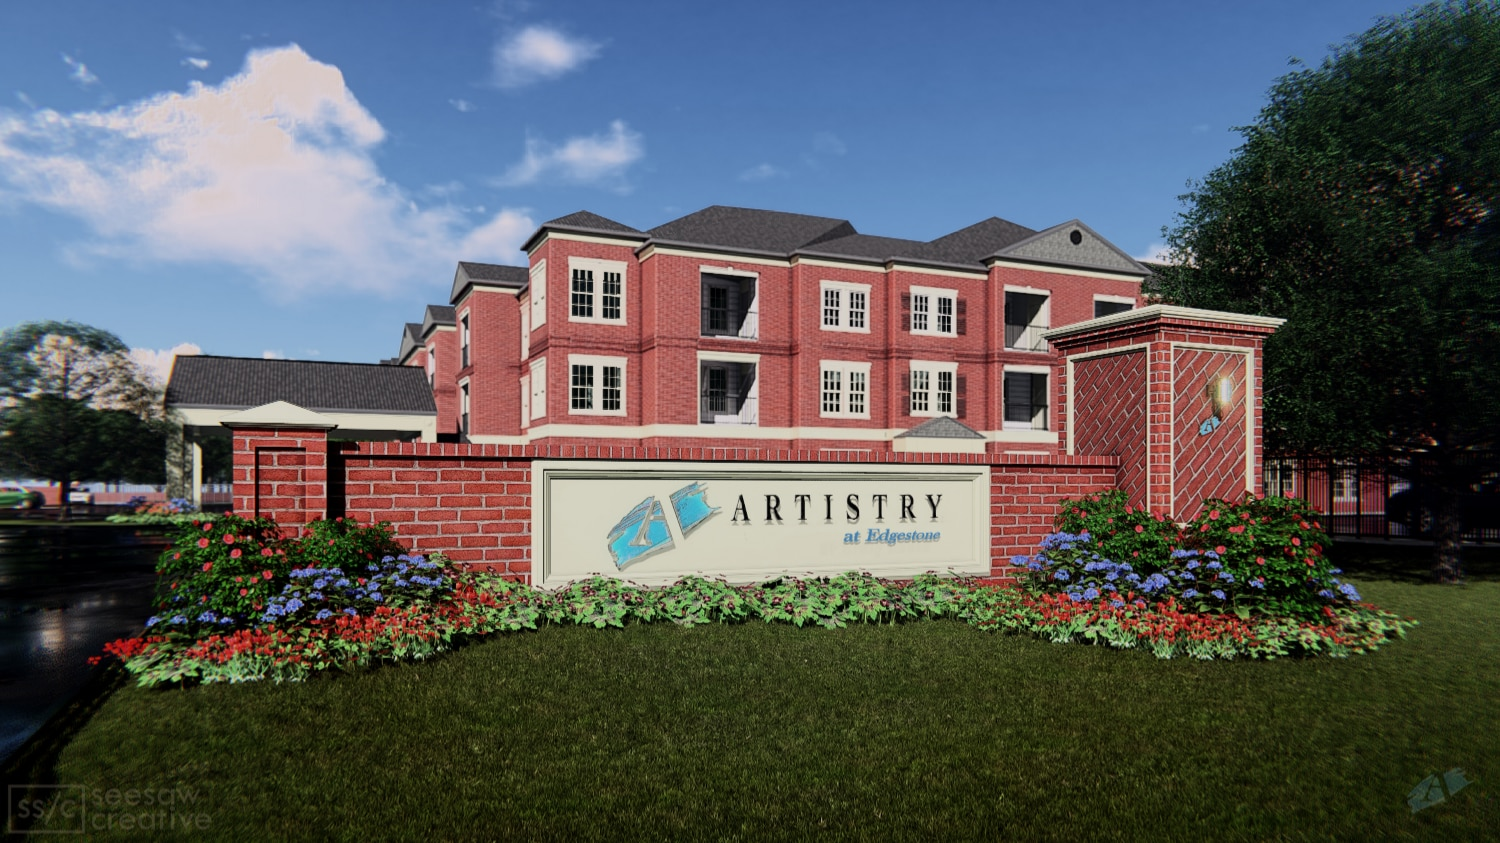 Presidium's Artistry at Edgestone rental community will have 188 units.